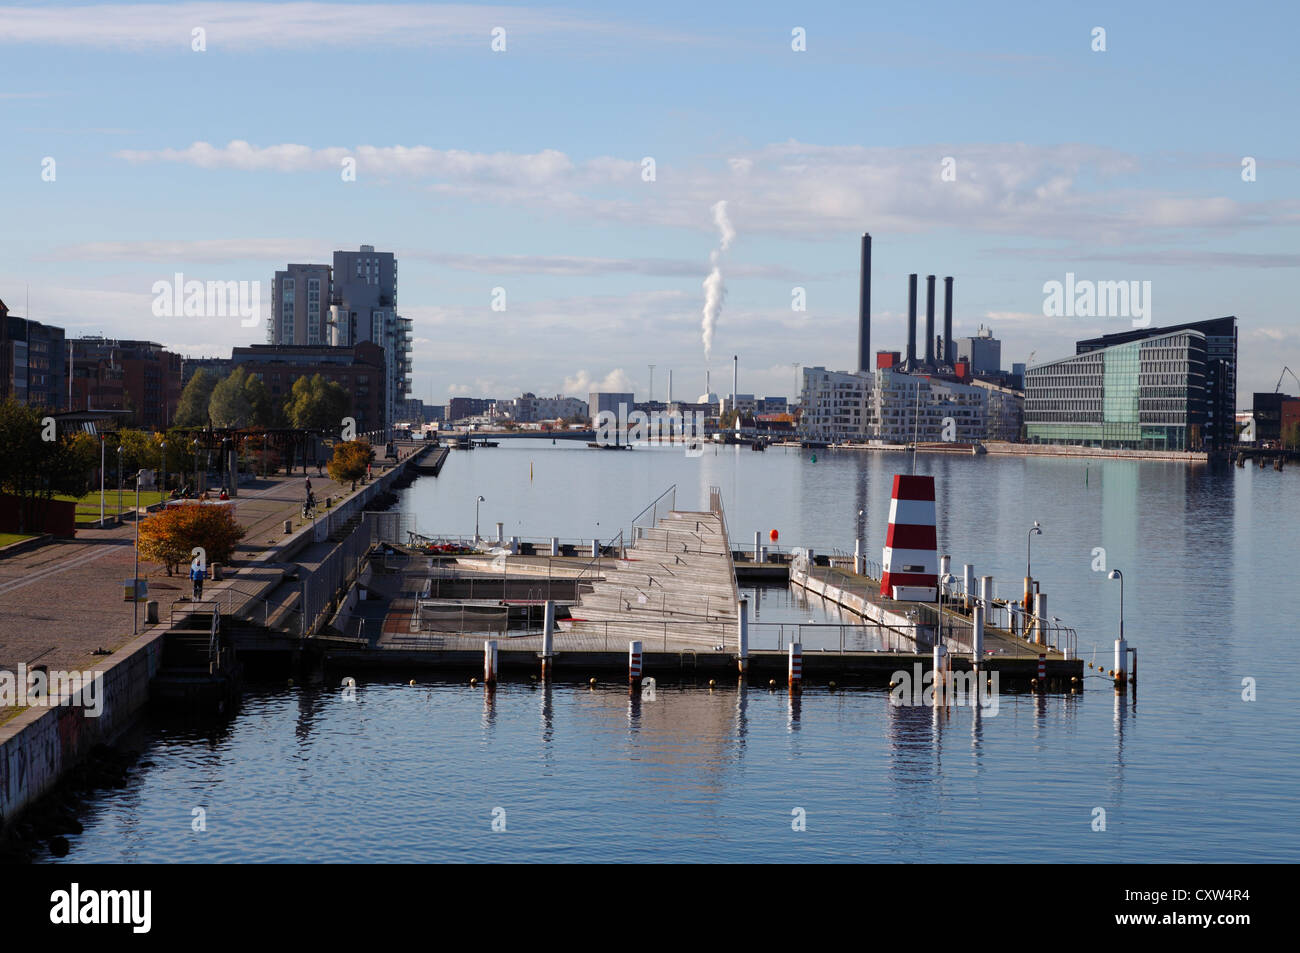 A desolate October out of season Copenhagen Harbour Bath at Islands Brygge in Copenhagen awaiting a new season. - Stock Image